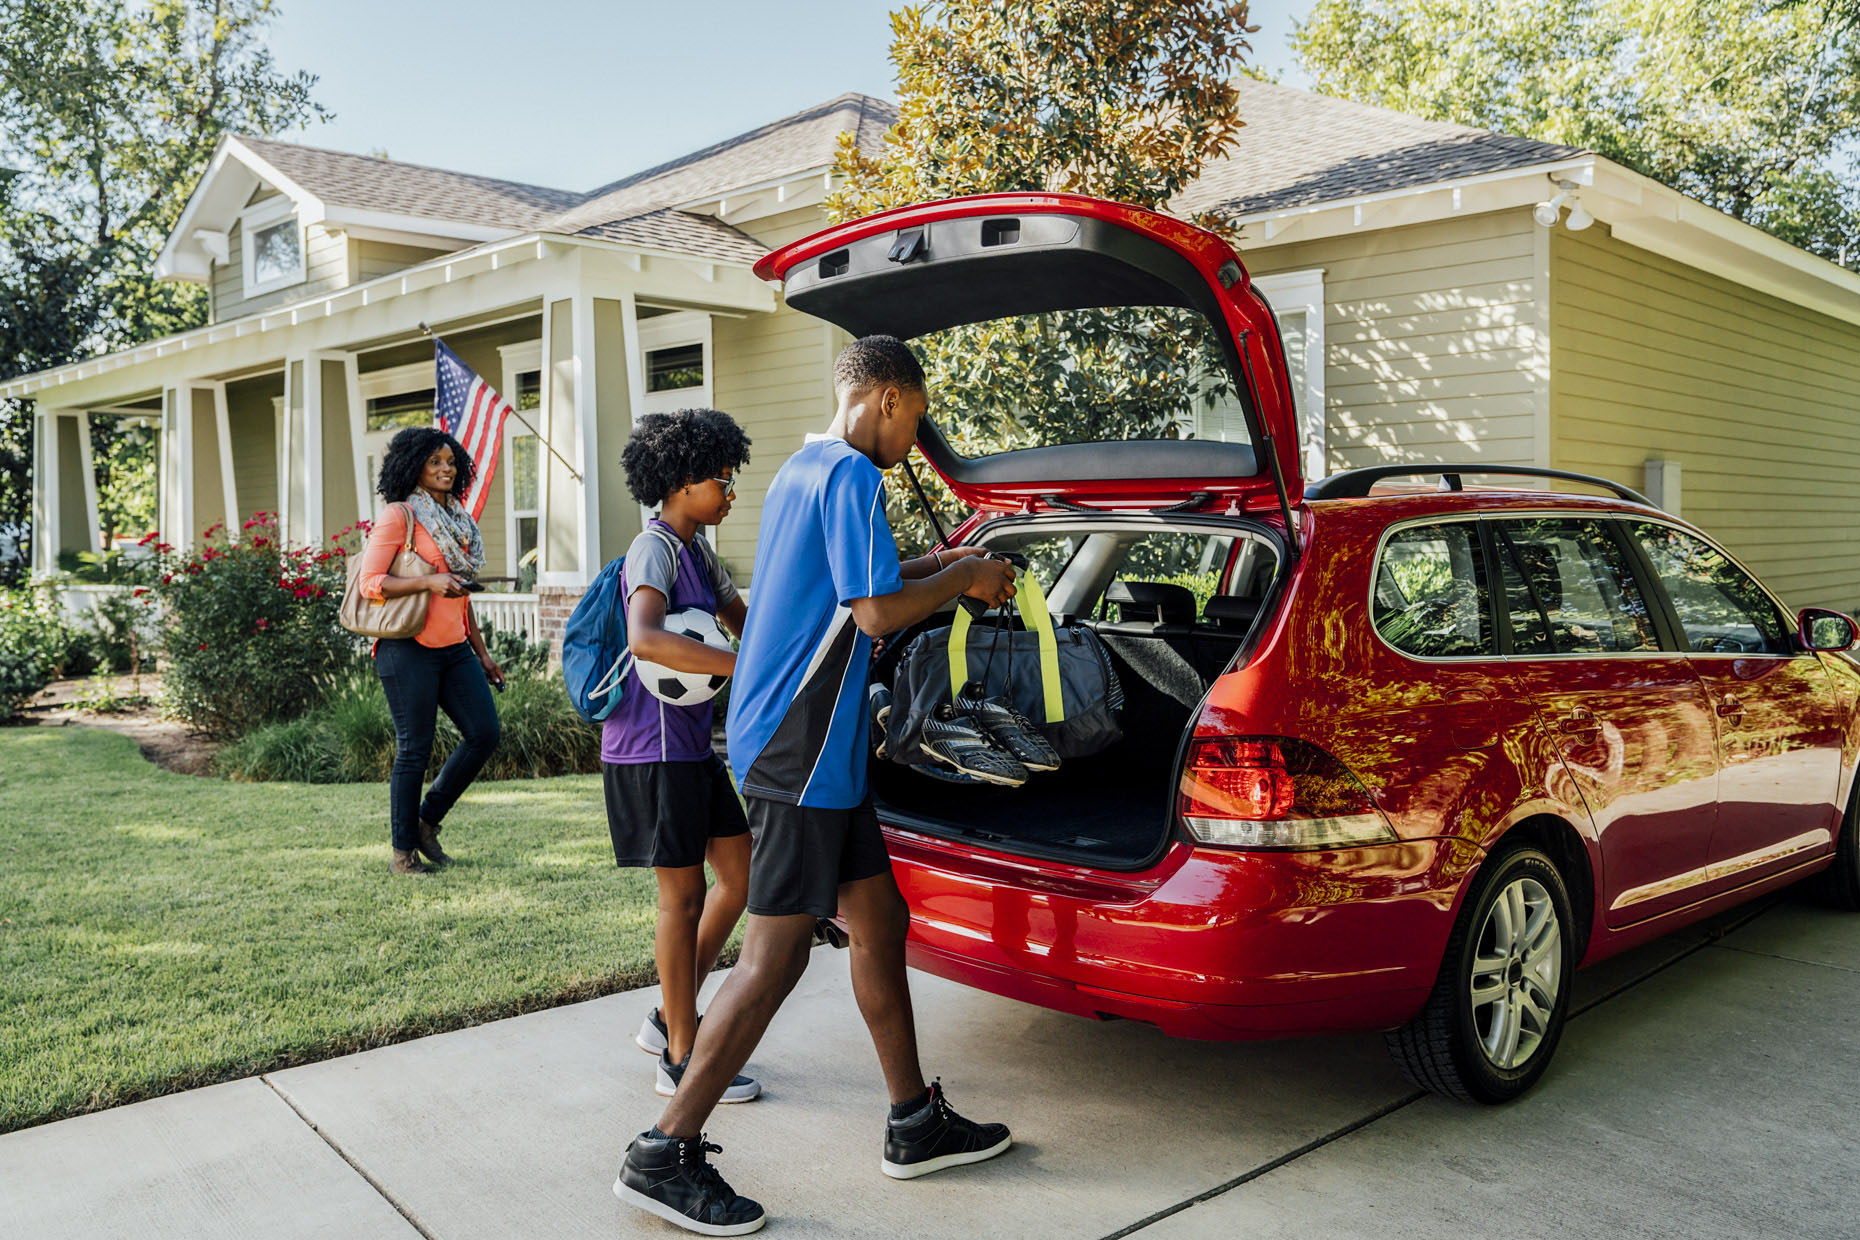 kids-putting-sports-gear-in-car-Inti-St-Clair-is_20161009_04001